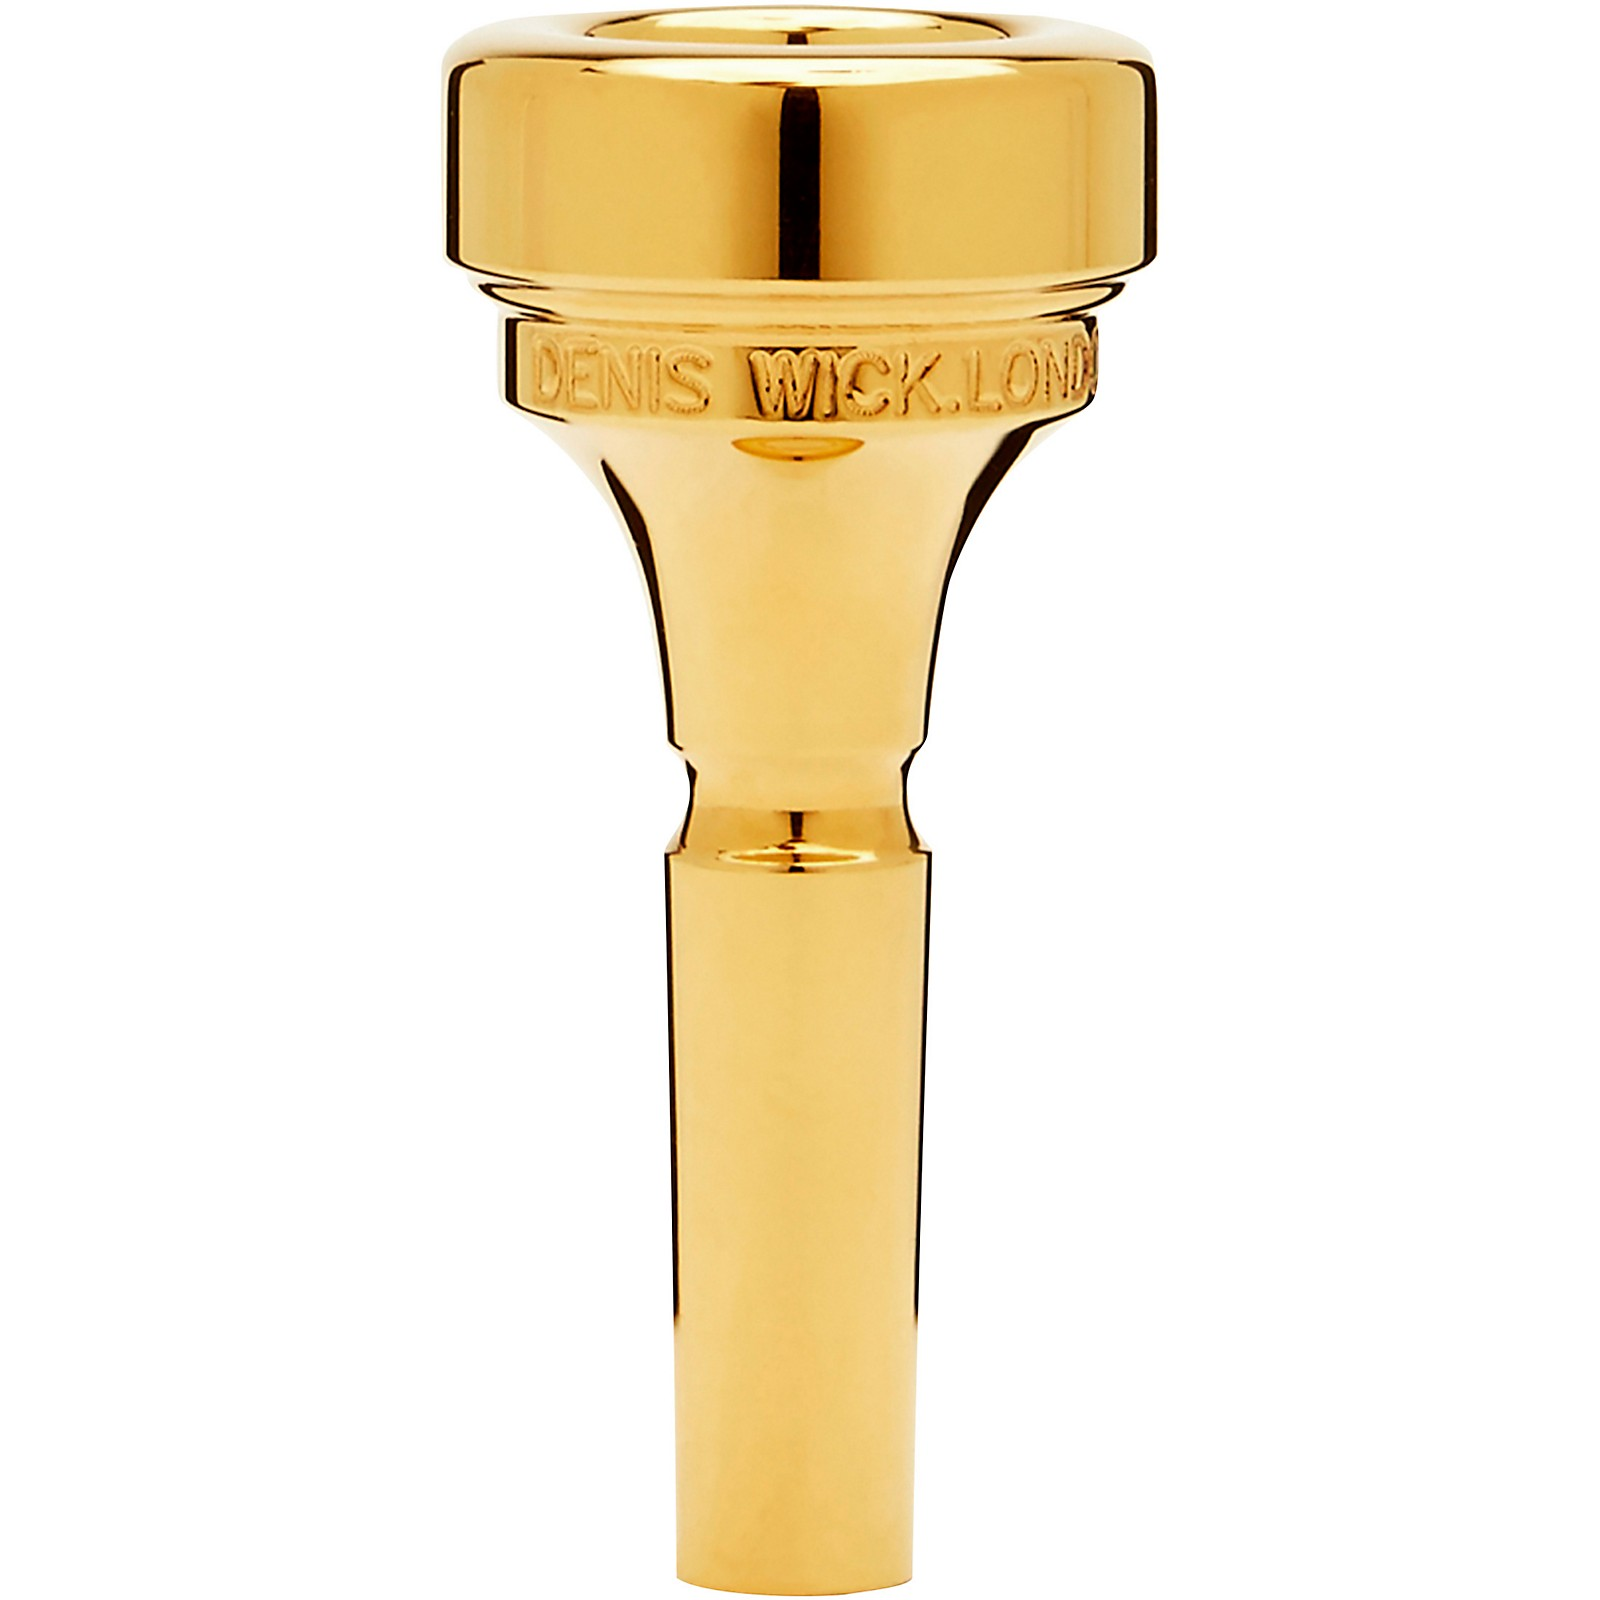 Denis Wick DW4881 Classic Series Cornet Mouthpiece in Gold